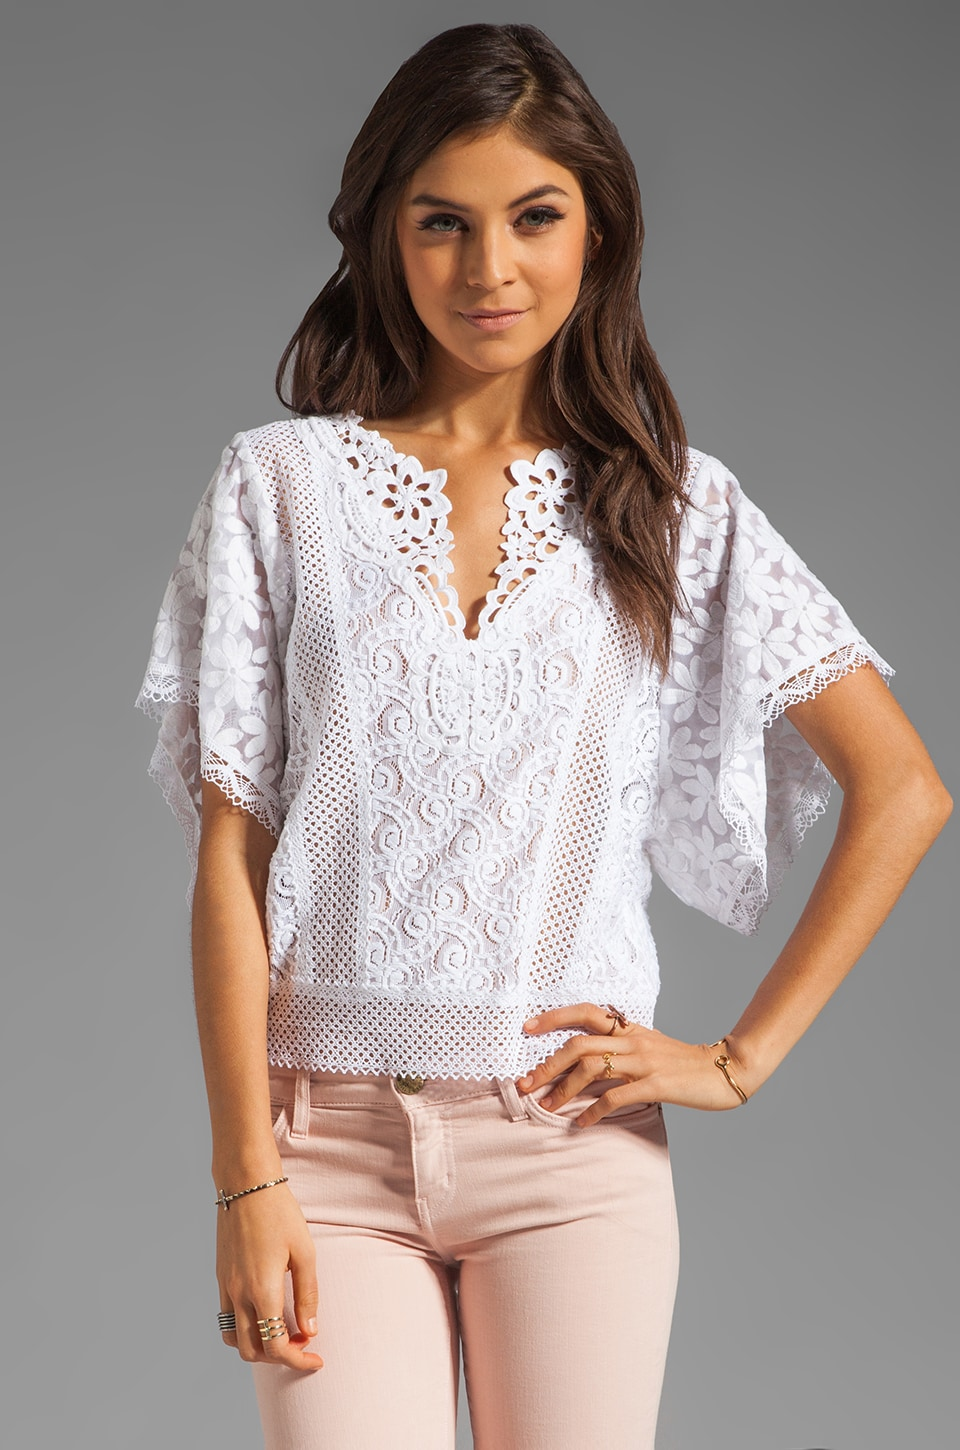 Nanette Lepore Beauty Lace Top in White